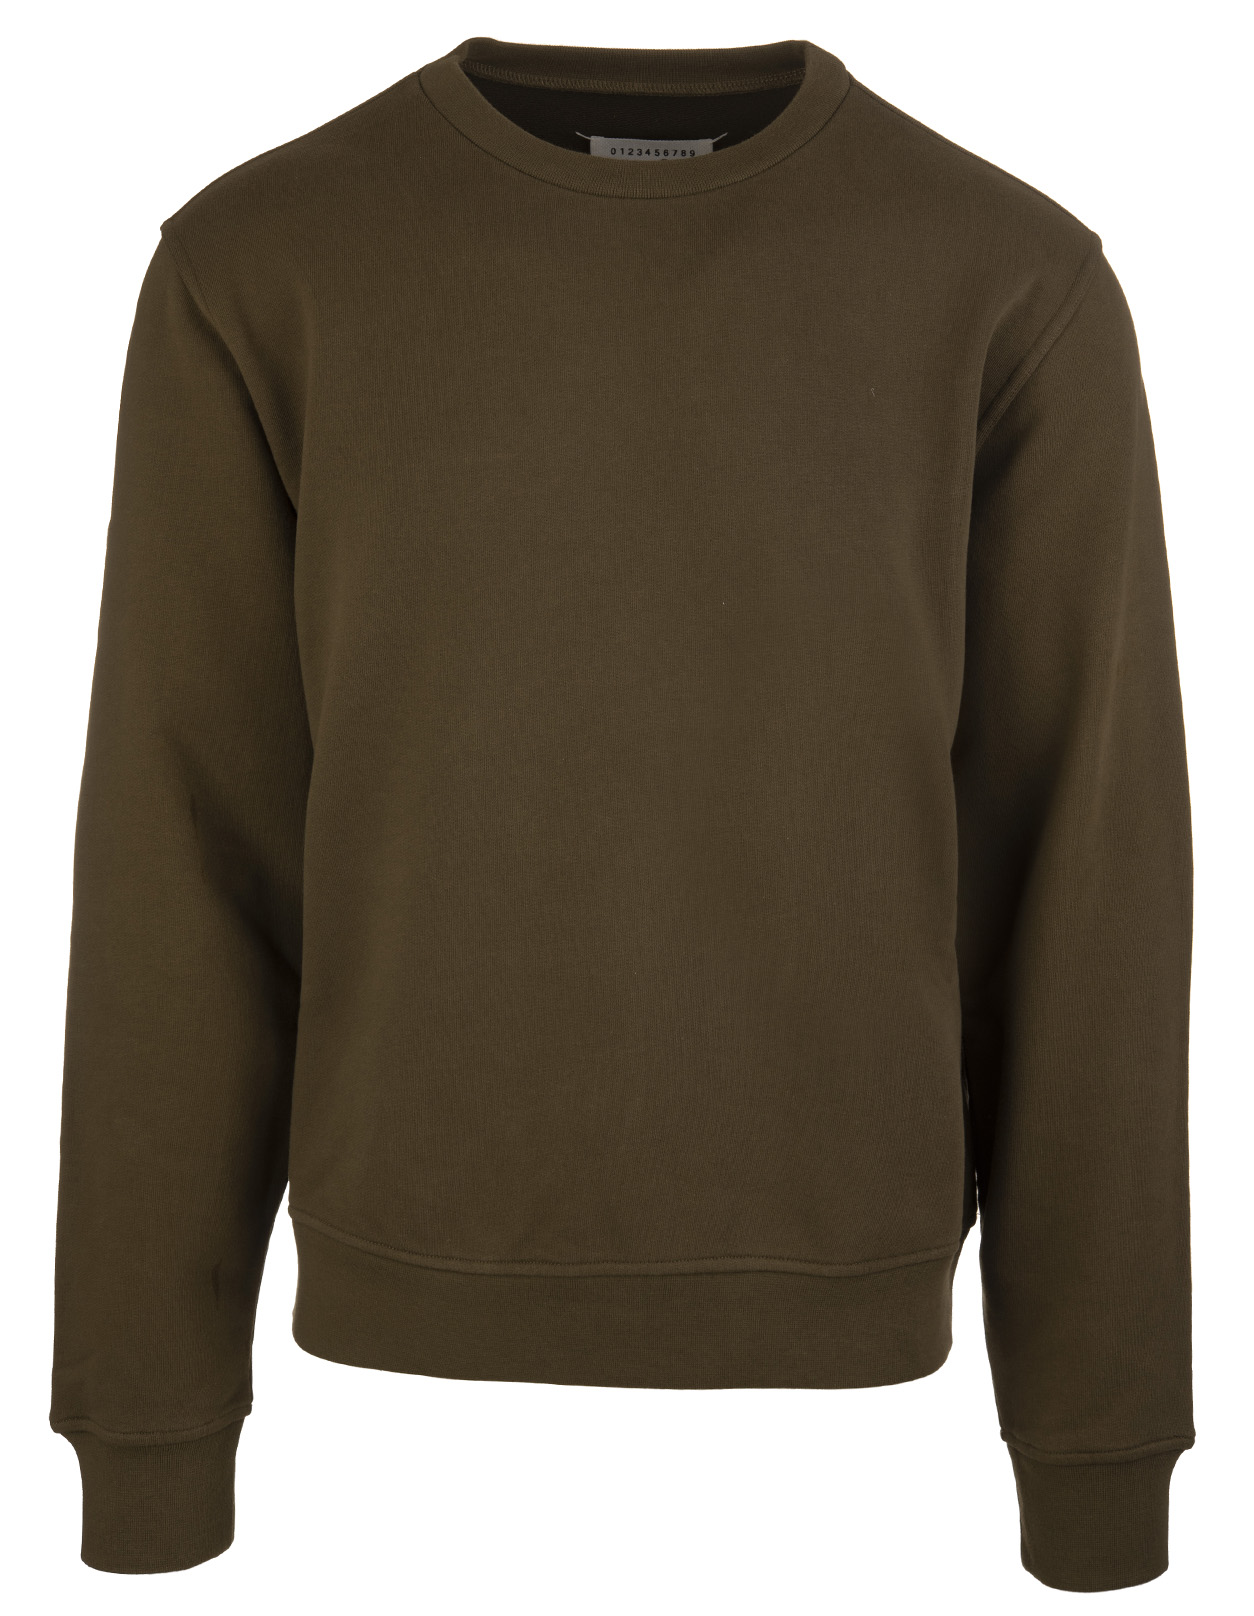 b5d81a83 Olive Green Sweatshirt With Elbows - MAISON MARGIELA - Russocapri